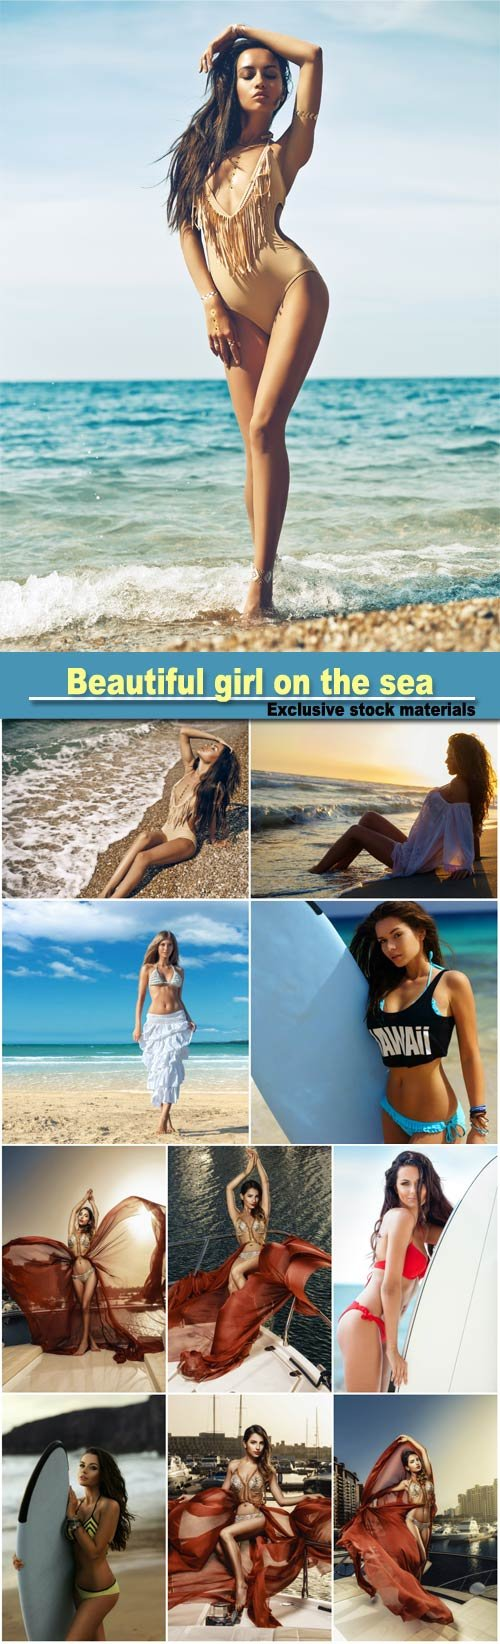 Beautiful girl on the sea, surfing